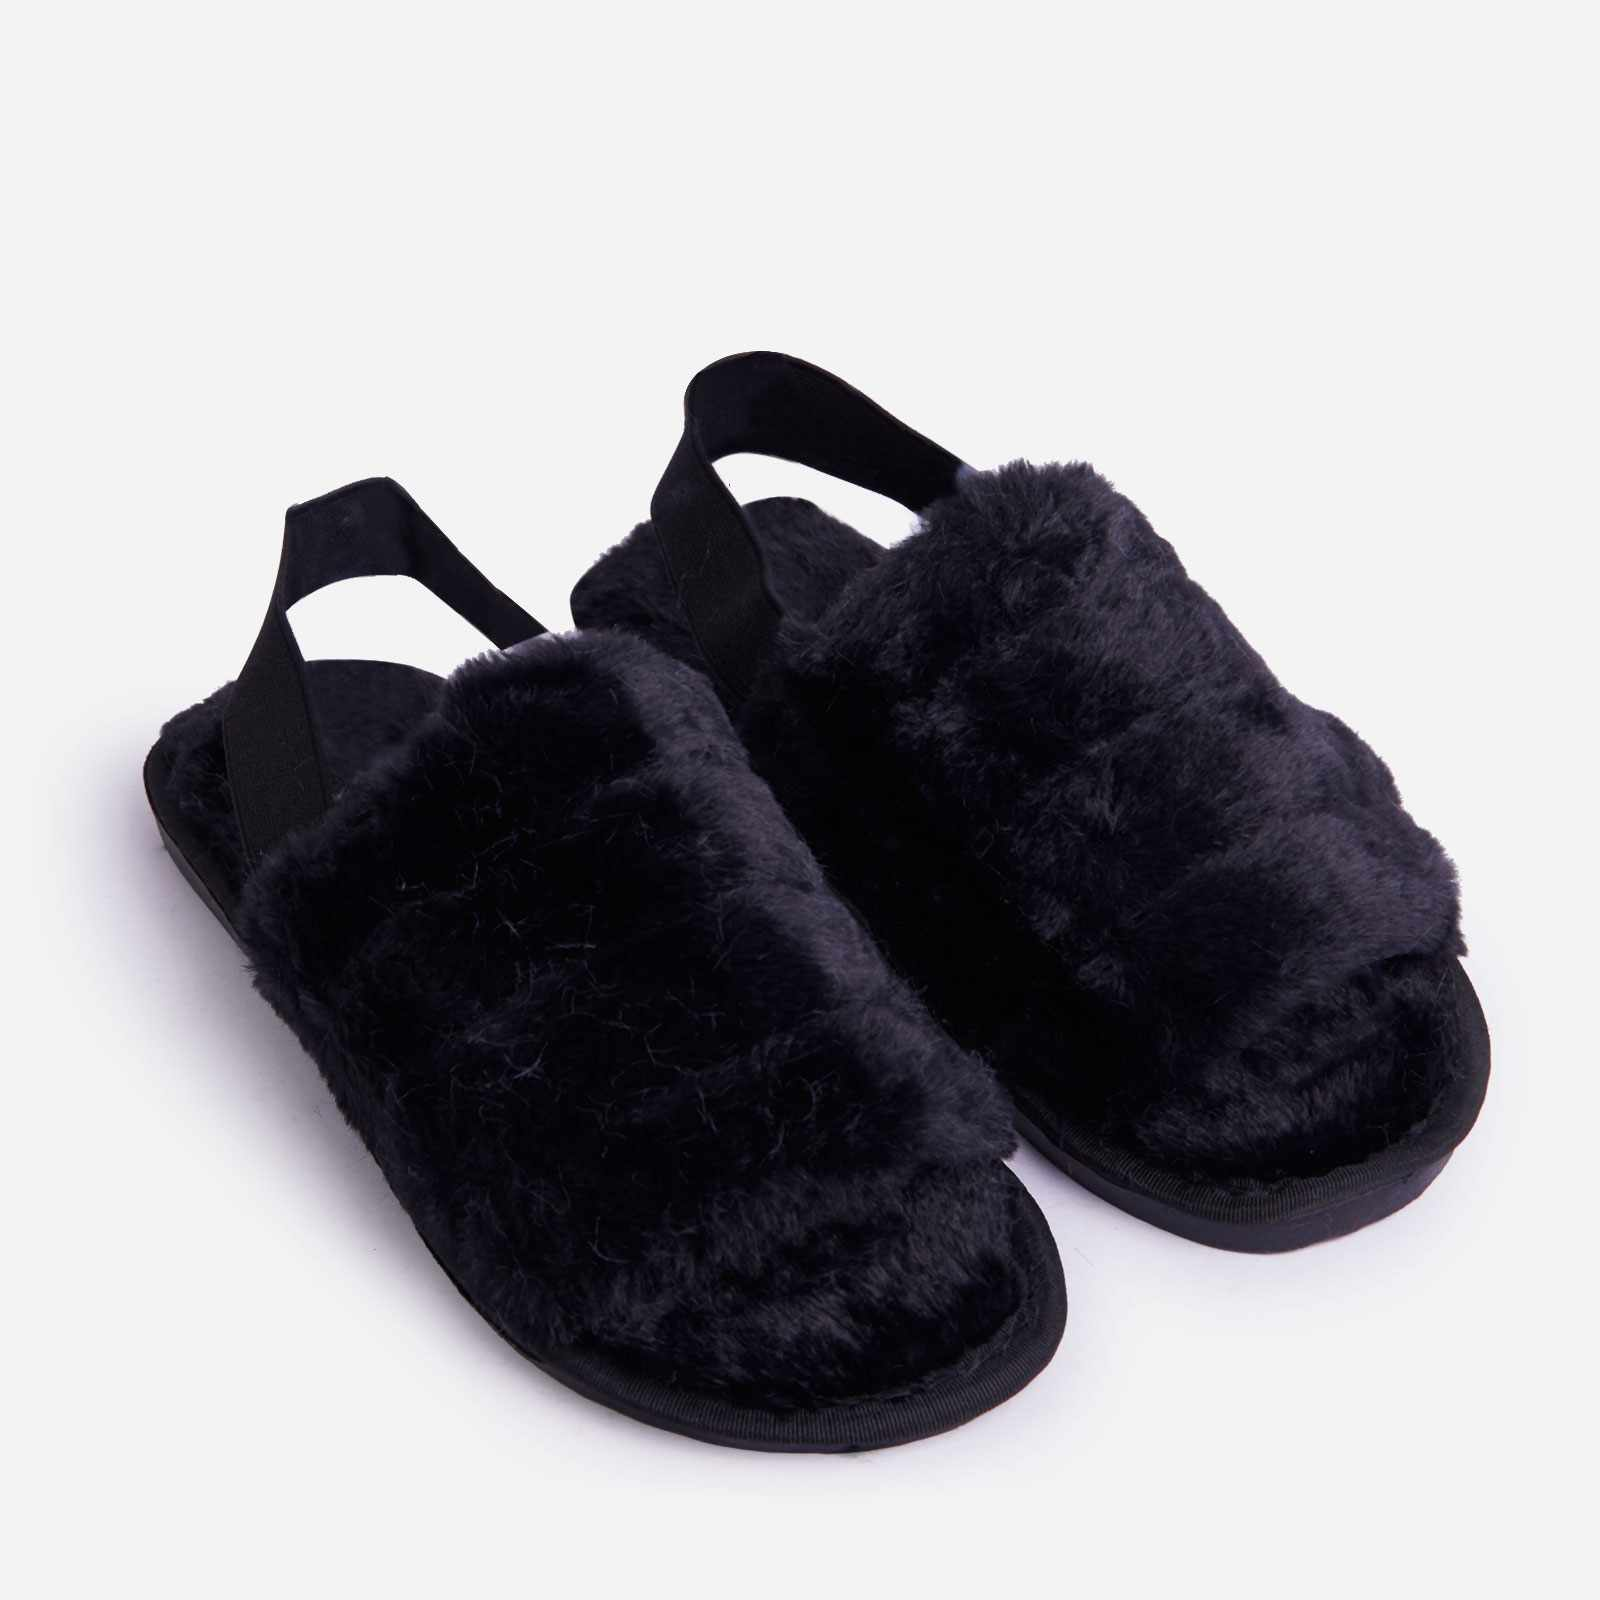 Lexus Stripe Fluffy Slipper In Black Faux Fur